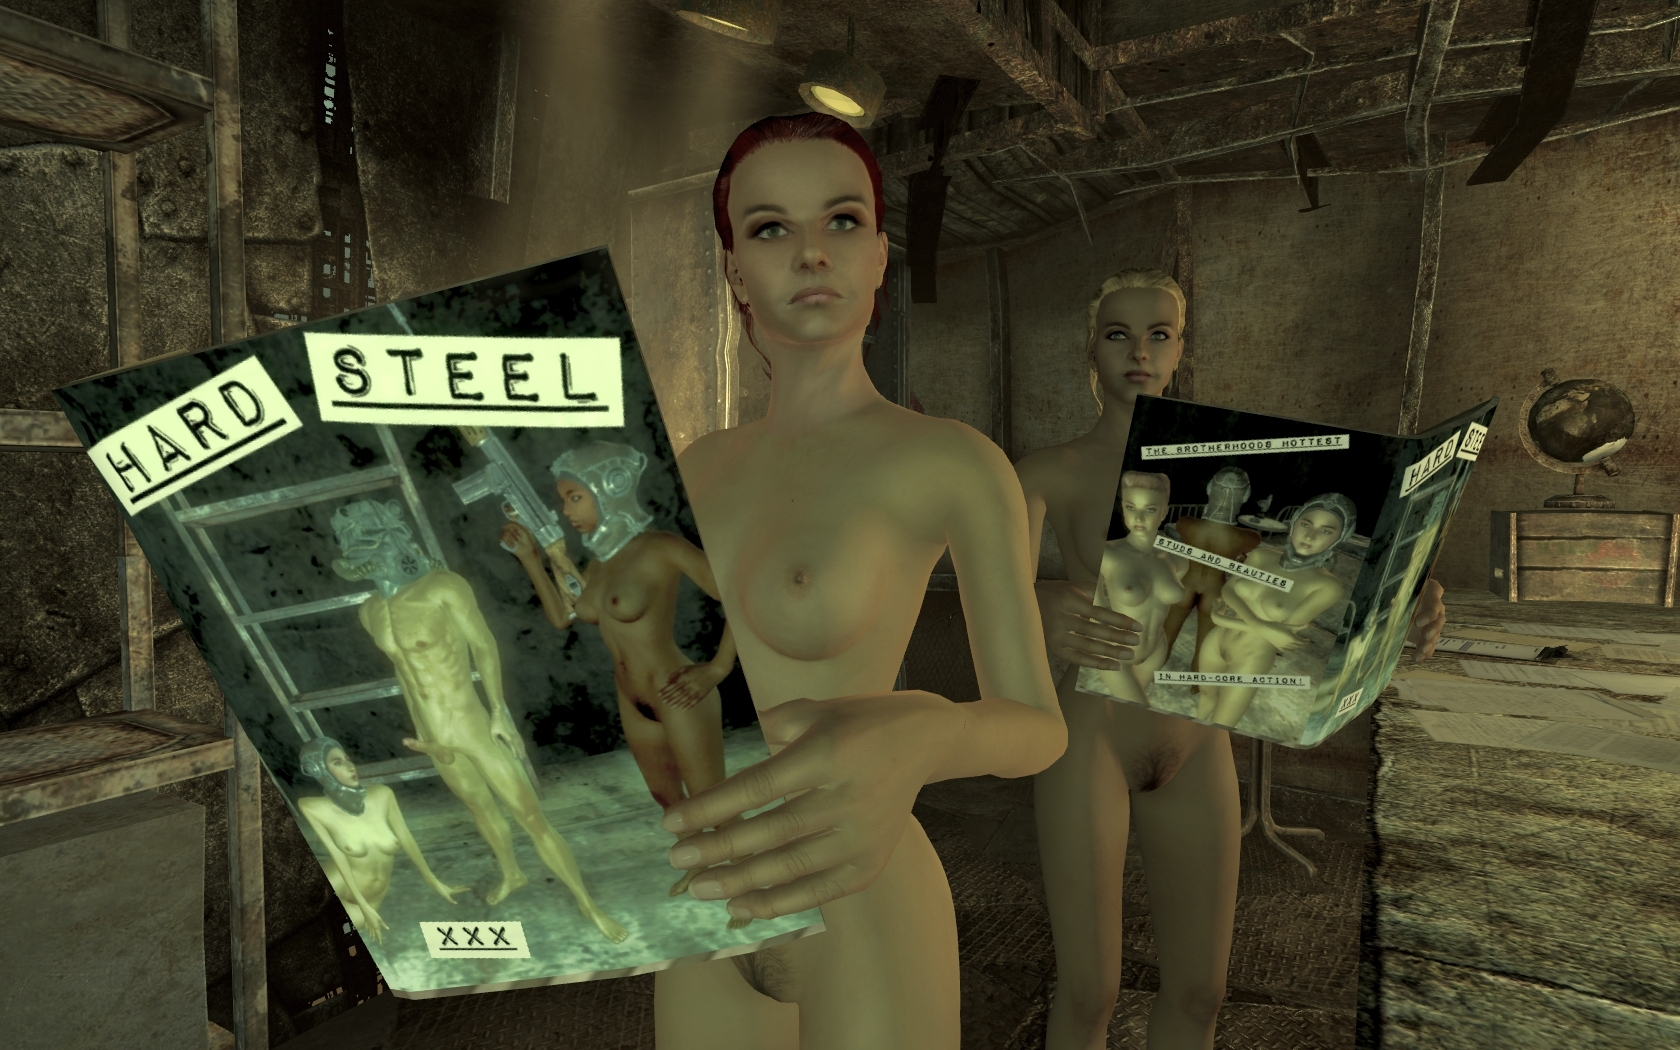 Where to find naked people in fallout sexy photo